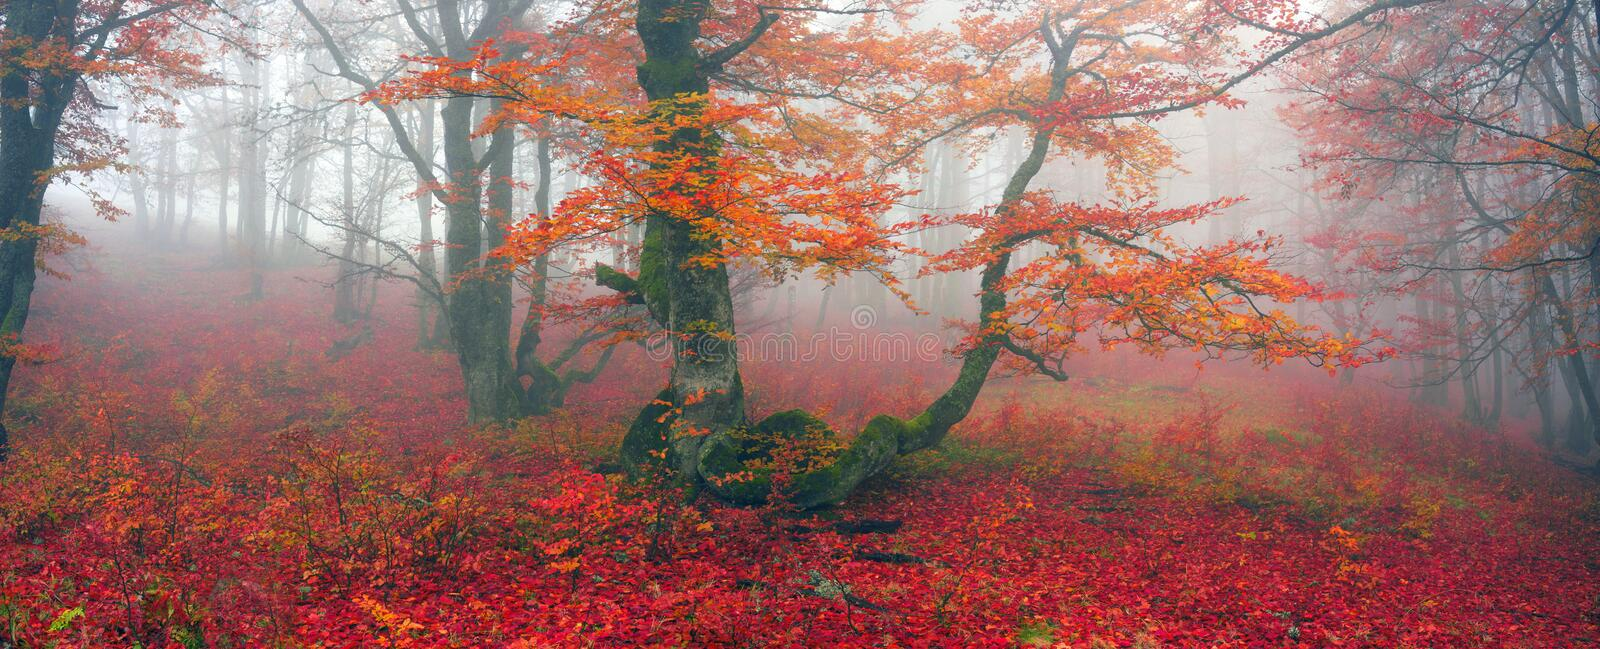 Autumn in the alpine forest royalty free stock photography